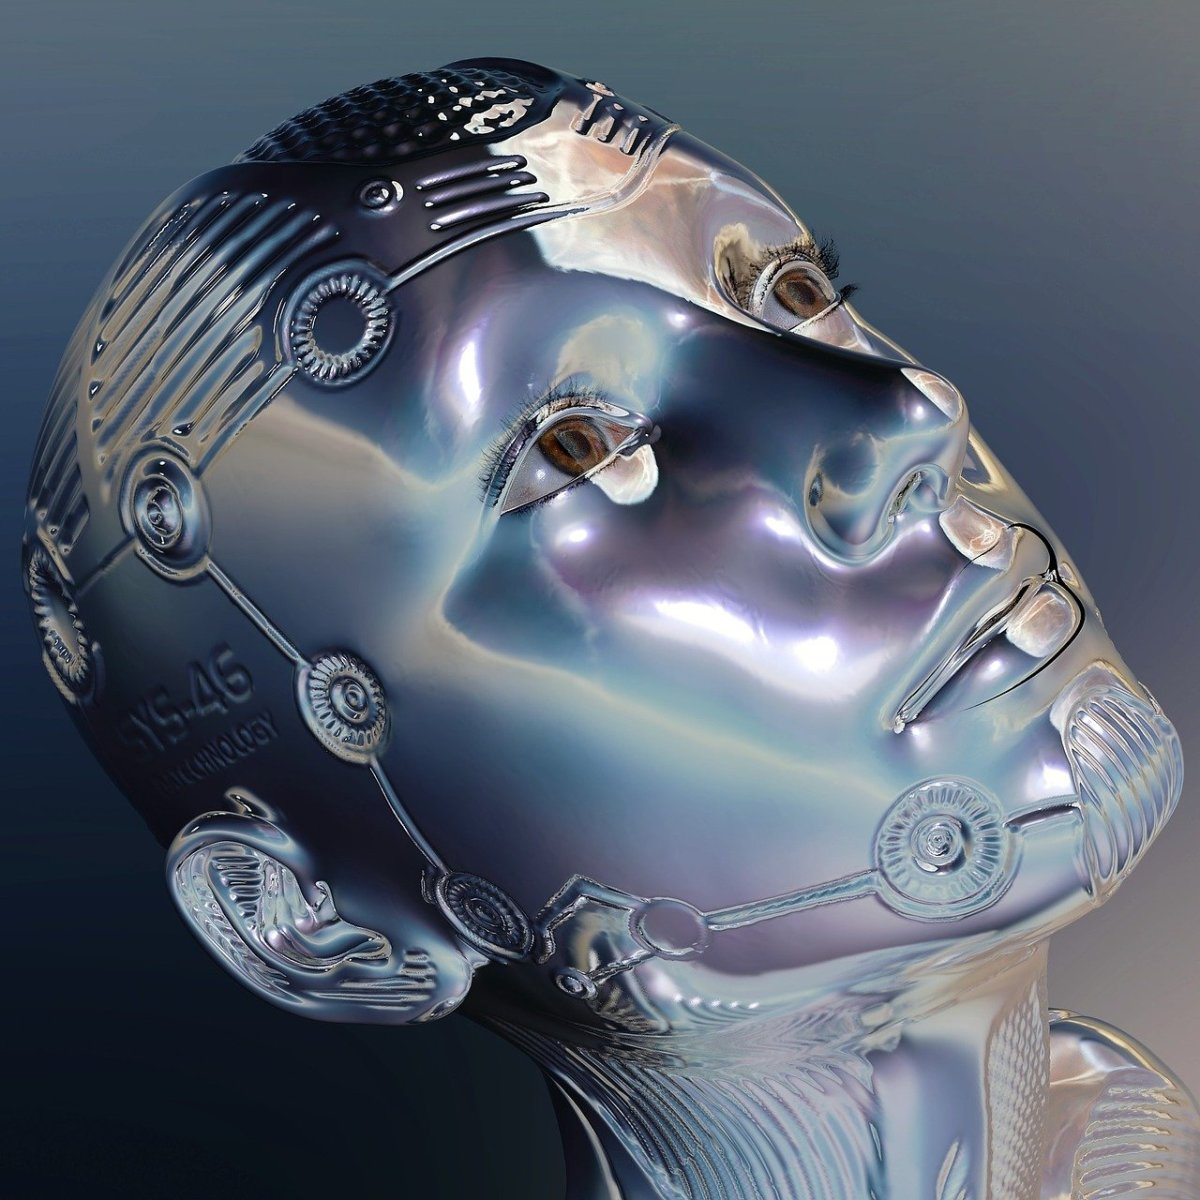 Role of Artificial Intelligence in Information Technology